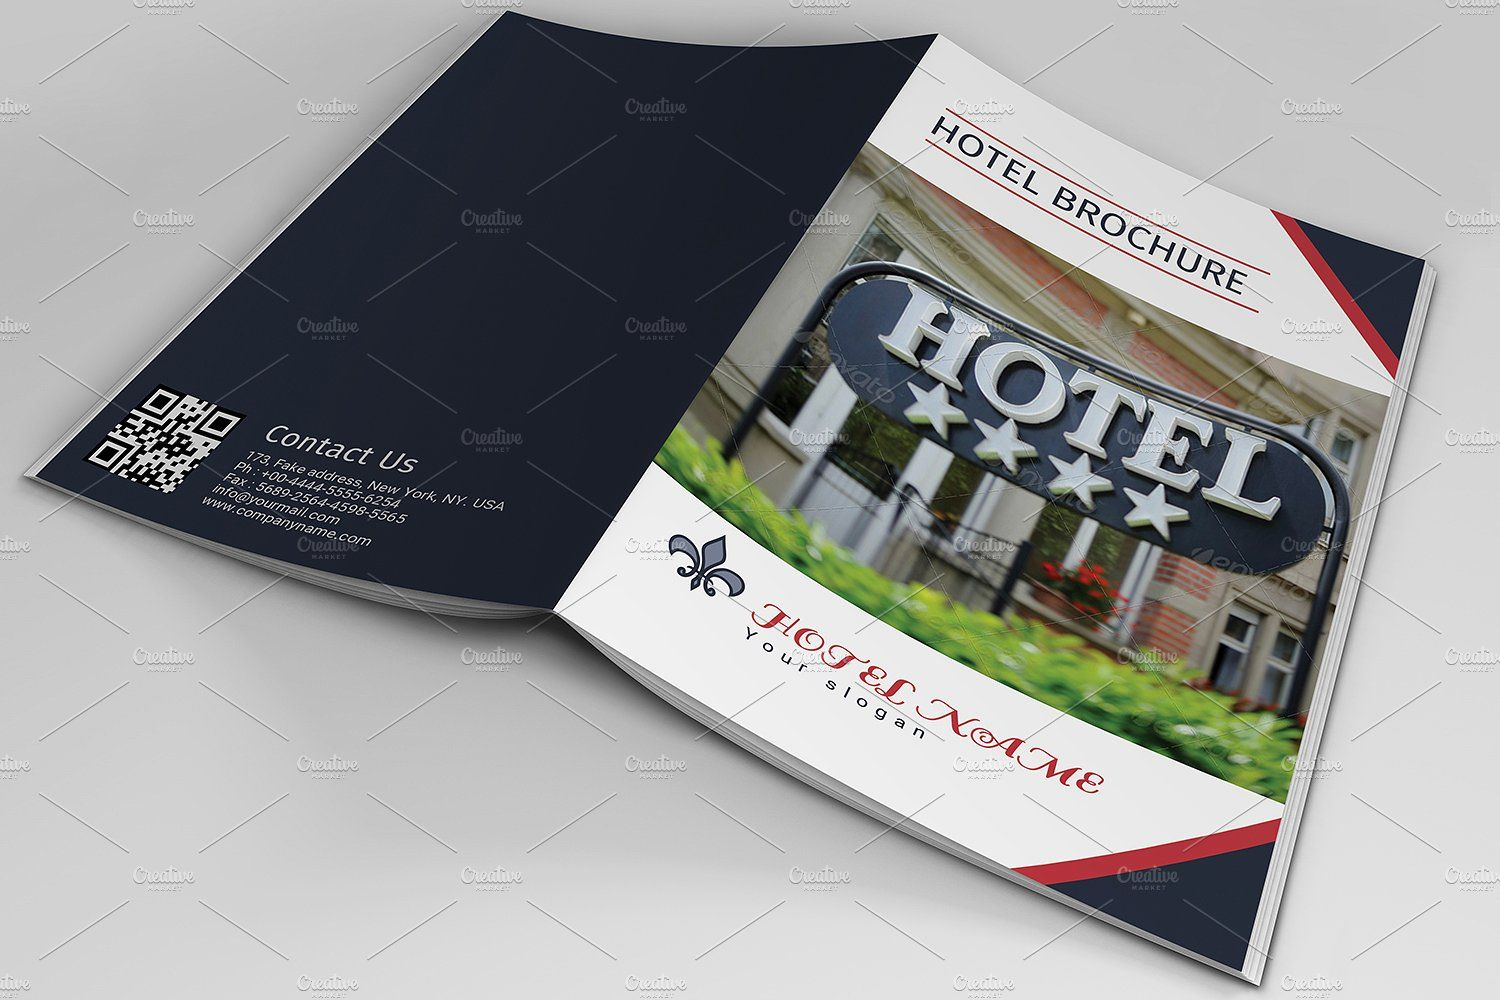 Hotel Brochure Template V By Template Shop On Creativemarket - Hotel brochure template